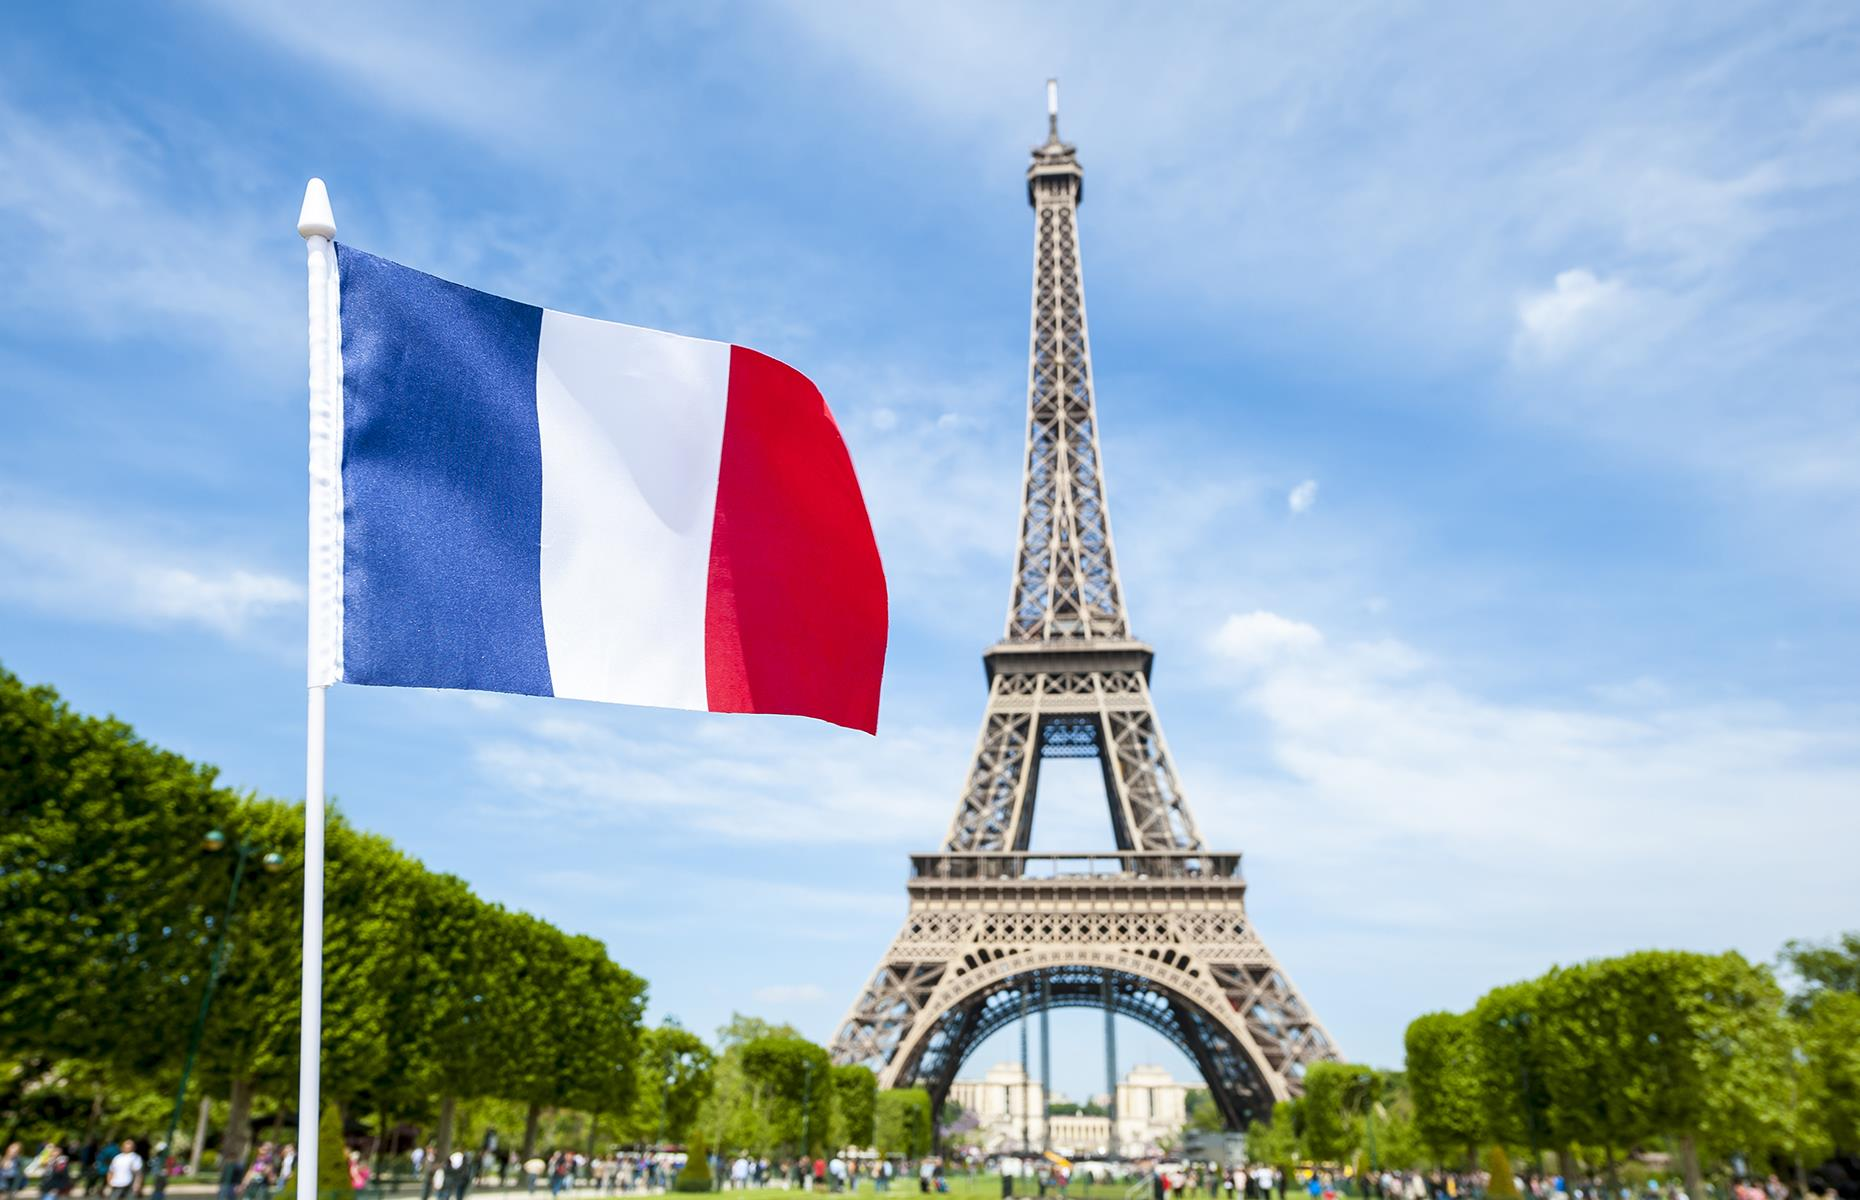 Surrogacy in France: What Are the Options for Intended Parents?